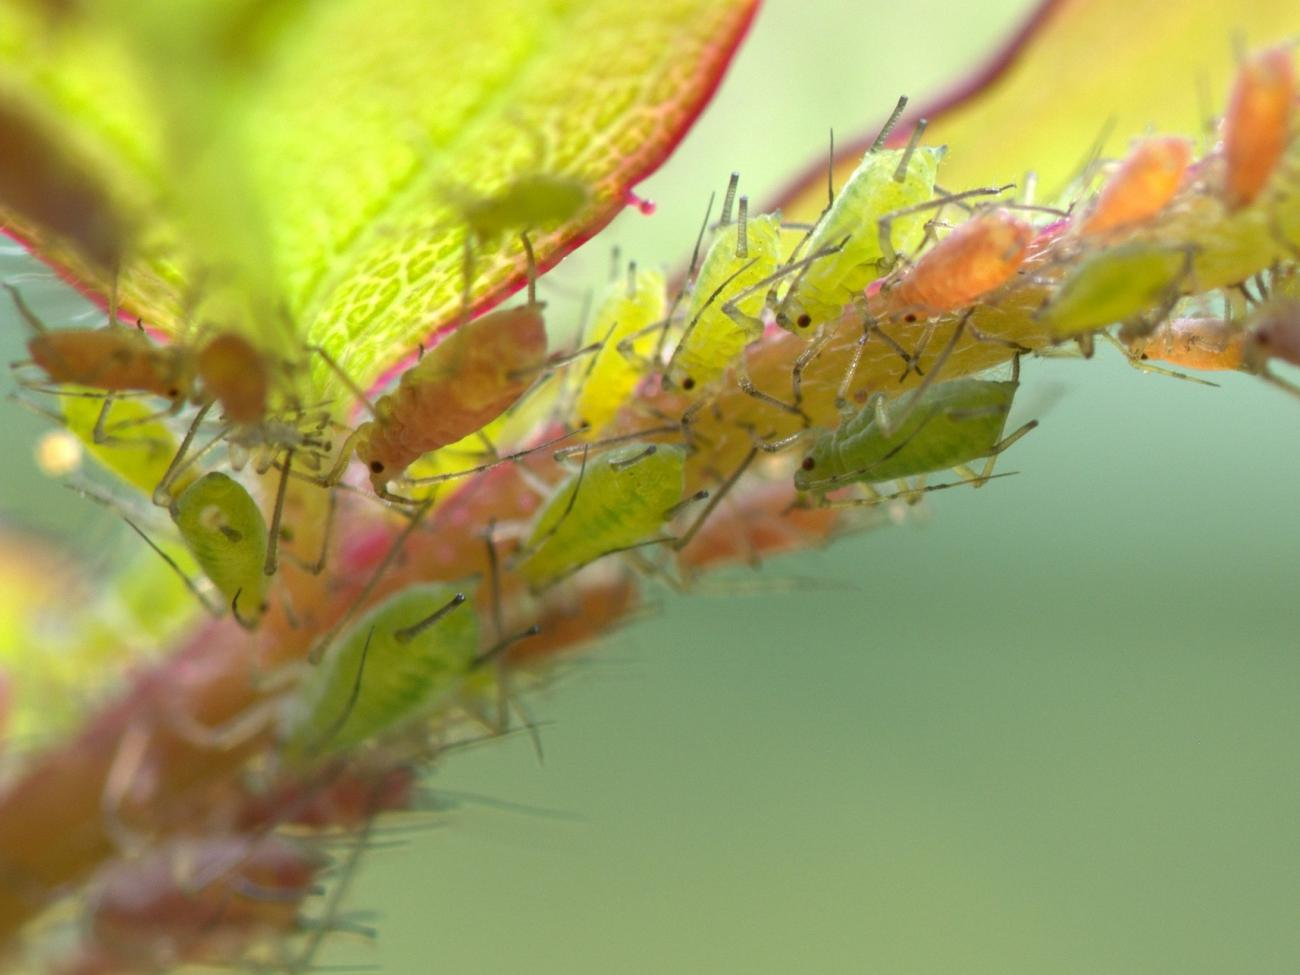 How to get rid of aphids on an indoor plant